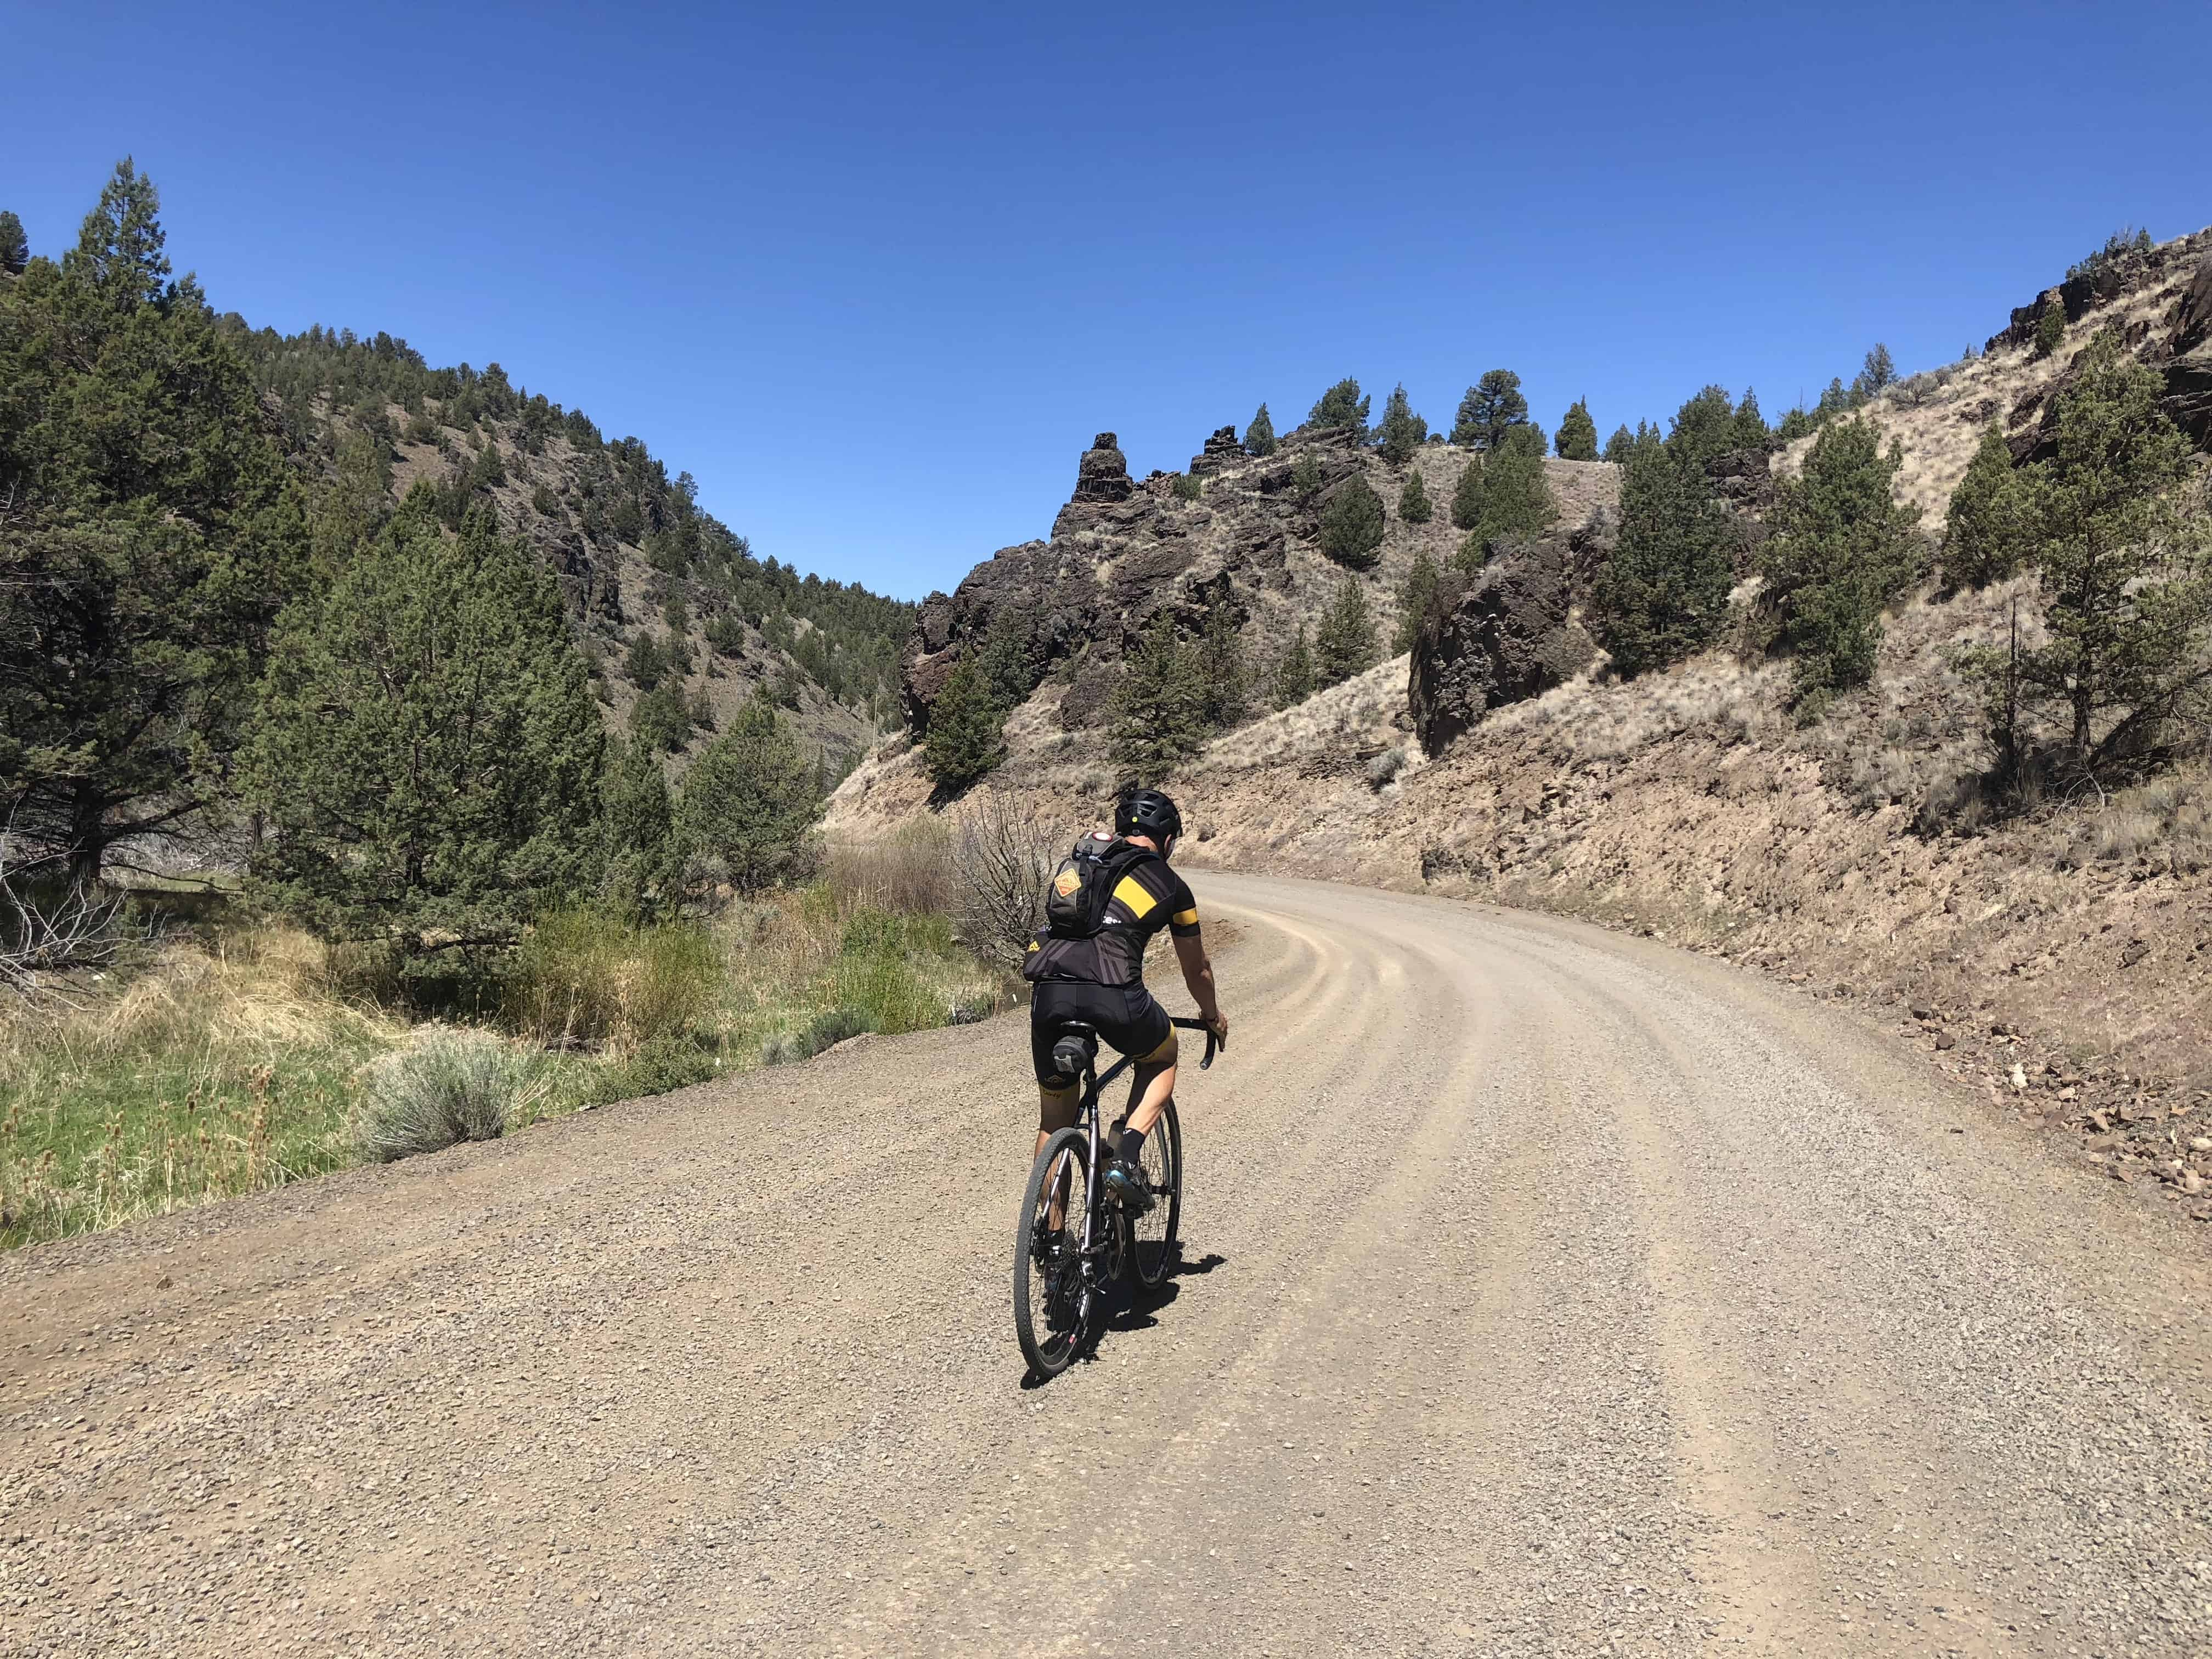 A small canyon like formation along the gravel section of Bear Creek road.